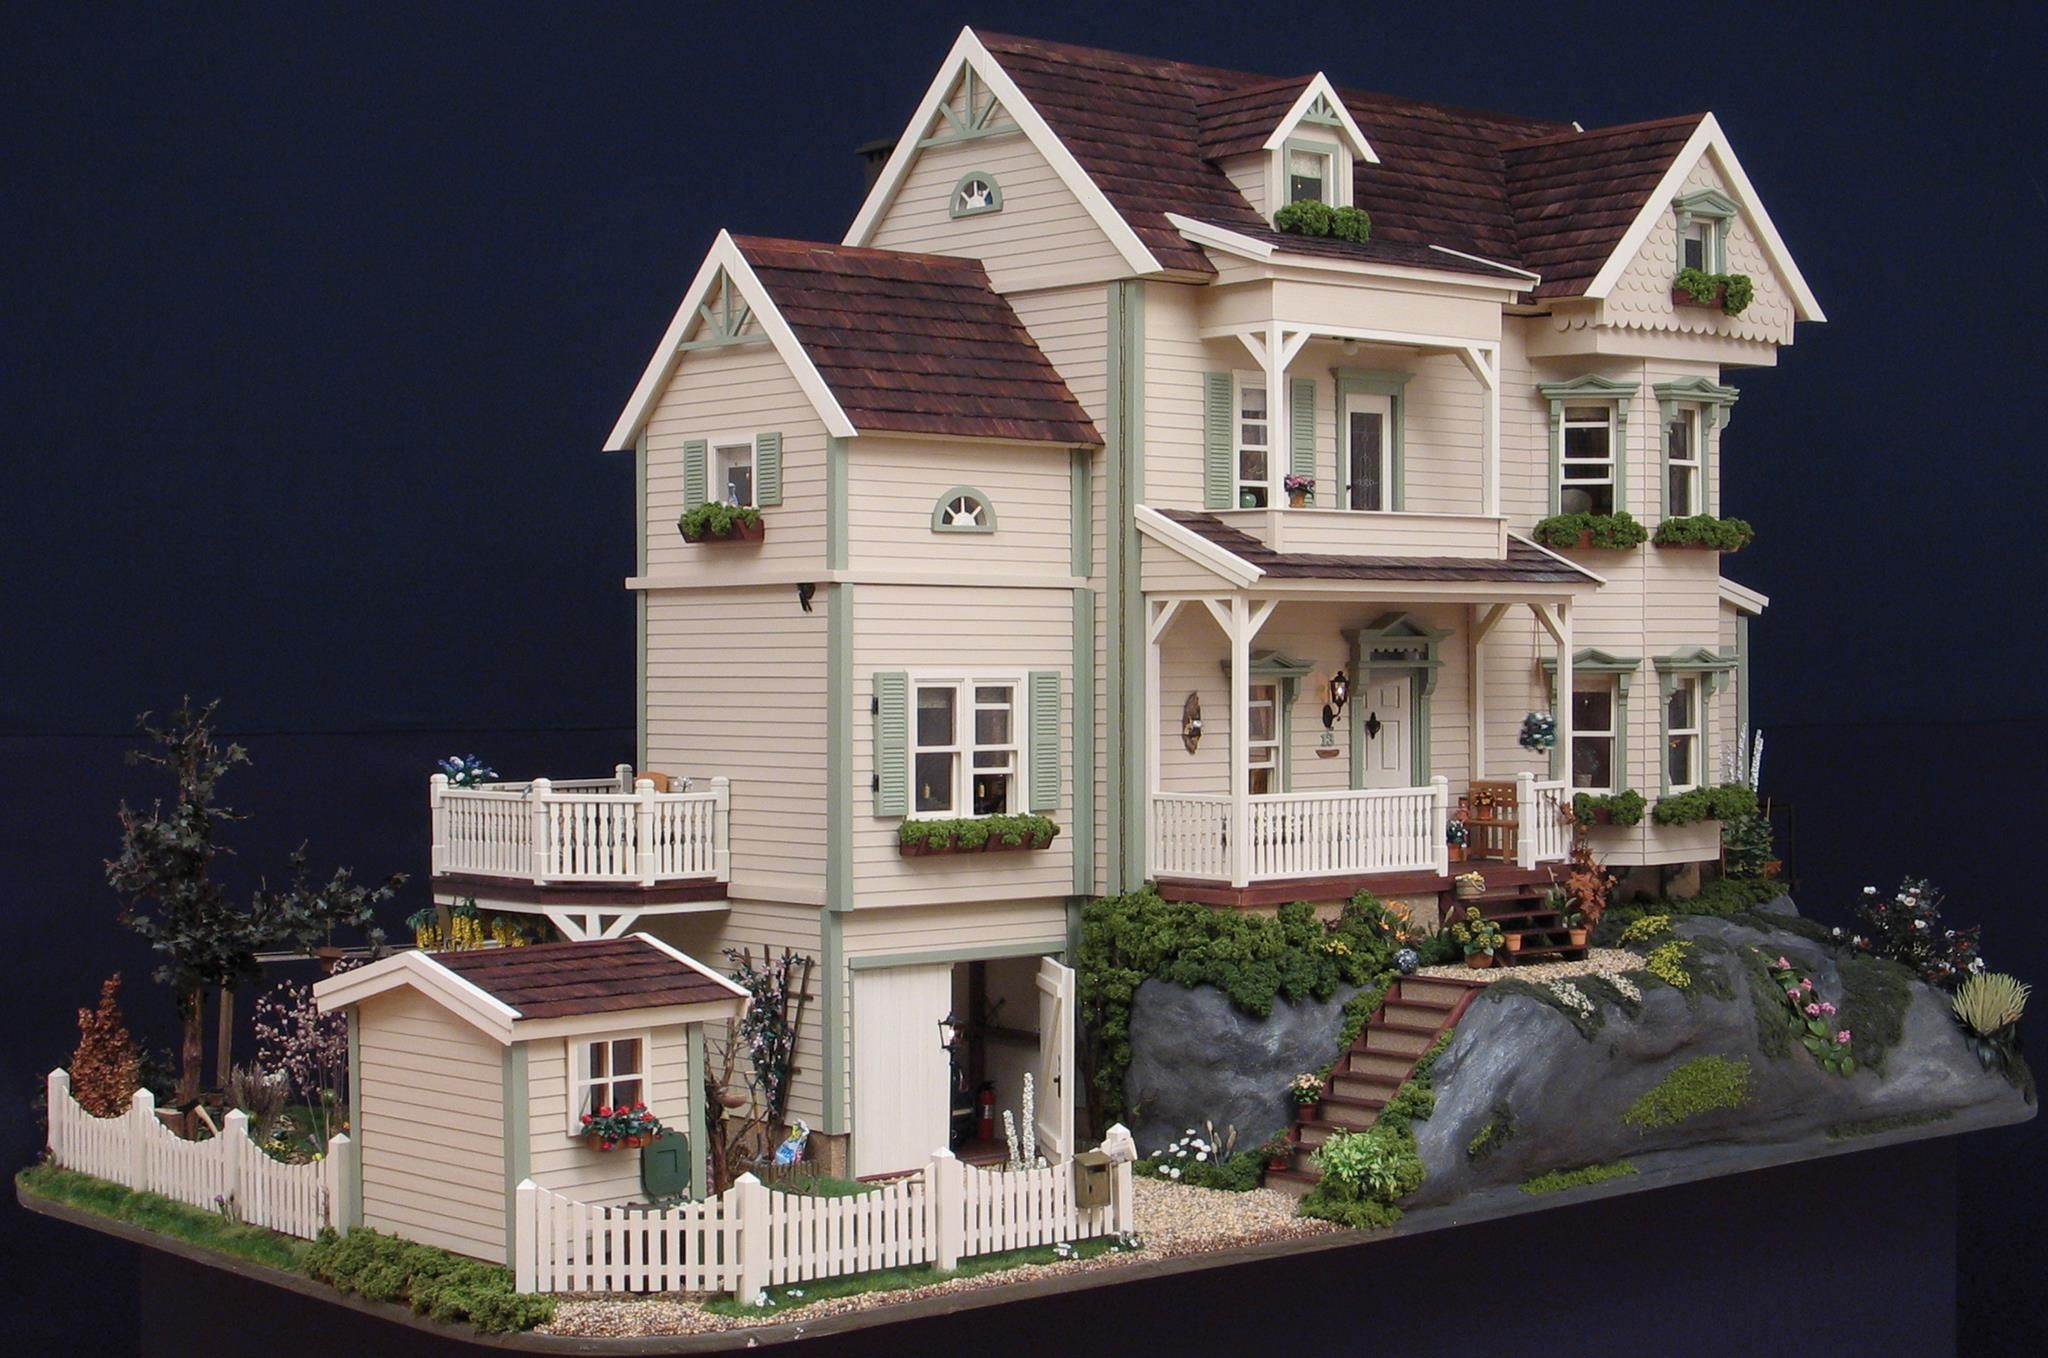 fantastic dollhouse with landscaping